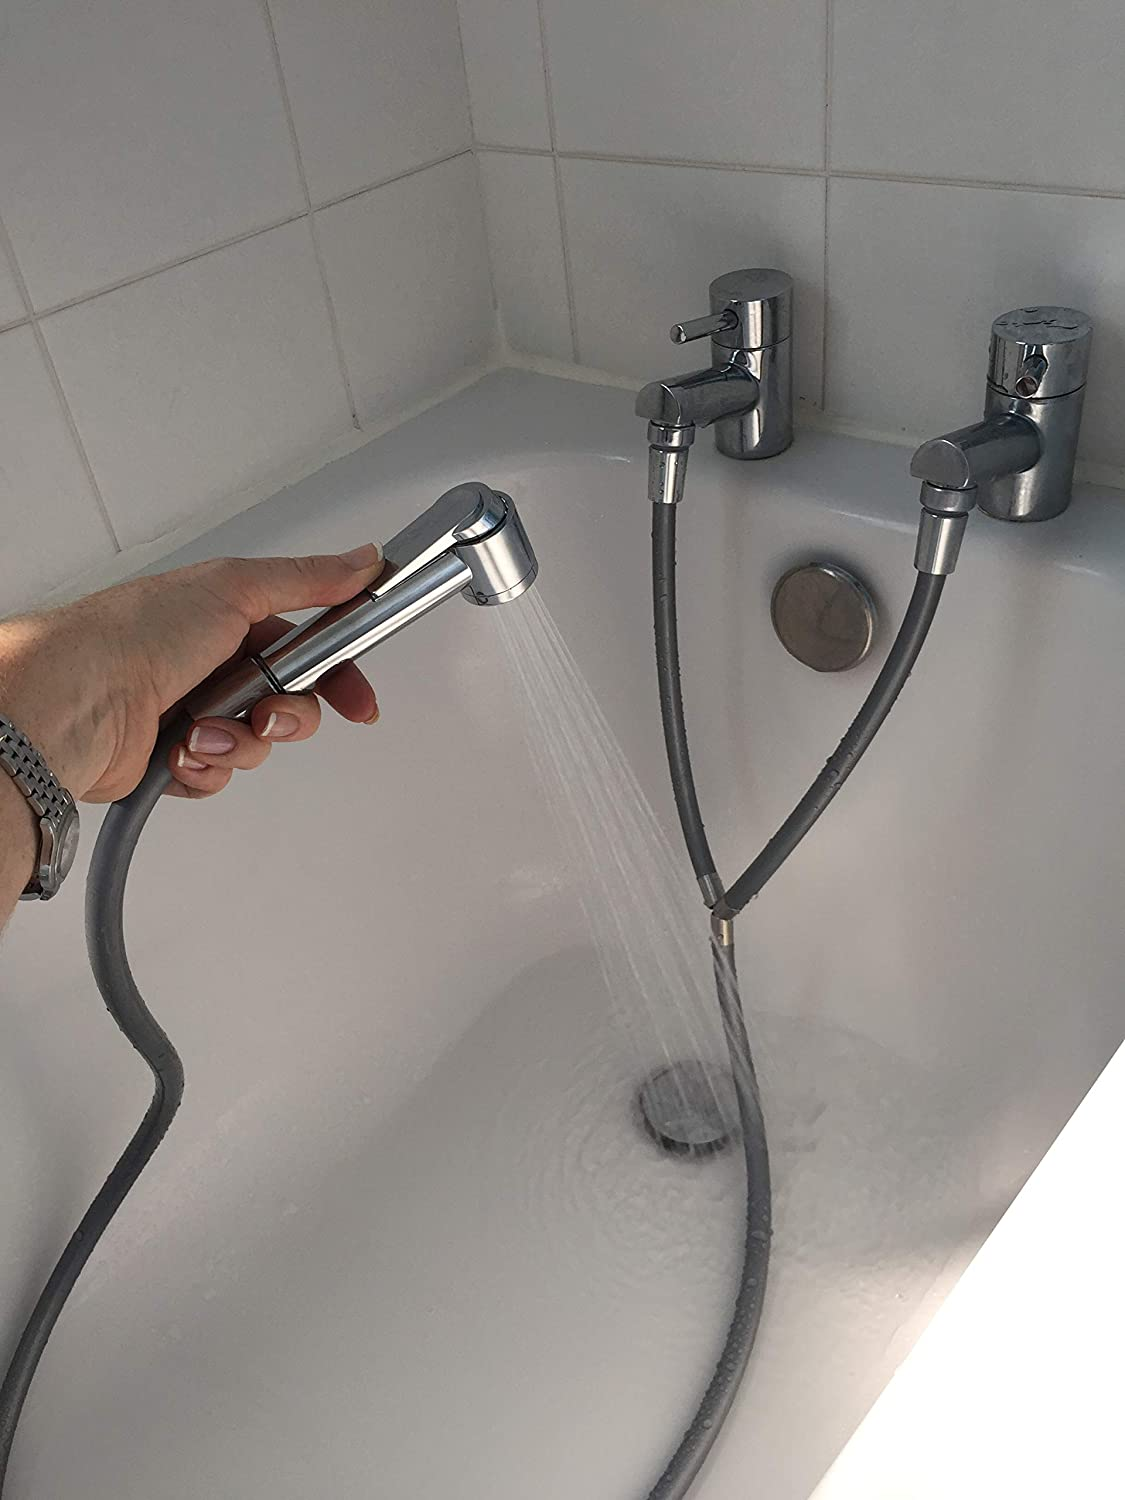 Turn your separate hot and cold taps (bath or basin) into an instant shower with this Y shape shower hose, x2 quick fit tap aerators and hose connectors, fits 28mm Male, 24mm Male and 22mm Female taps, and x1 on off thumb lever shower head - much cheaper